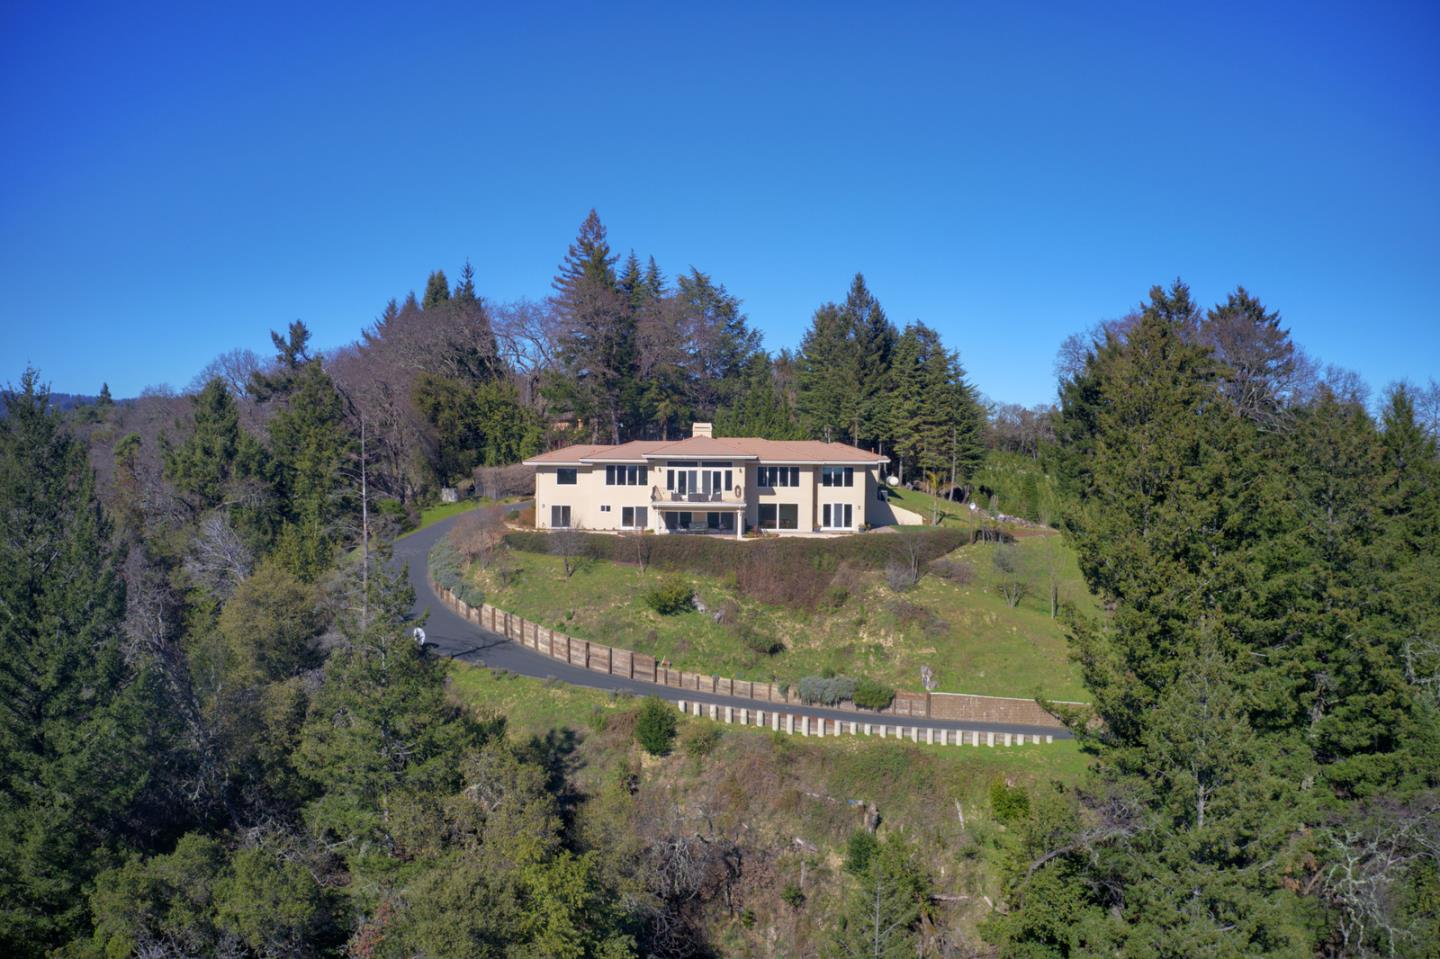 Once you experience everything this incredible estate has to offer, you will never want to leave! This stunning, luxury estate is nestled on one of the largest private parcels of the Santa Cruz Mountains. Your very own, majestic 86 acres to discover yet just minutes to downtown Los Gatos. Step into the grand entry with high ceilings & an abundance of natural light as you enjoy breathtaking views all the way to Monterey from every room. Gleaming hardwood floors & new carpet guide you through 5 opulent bedrooms, 3 full baths & 2 half baths including a luxurious master suite with a fireplace, resort-like bathroom and spacious walk-in-closet. Builder spared no expense with high end finishes & exquisite attention to detail throughout. Seller is the original owner & has meticulously maintained the property. Beautifully landscaped grounds with plenty of areas to hike, play & explore with swings and your own personal zipline. This estate is not just a home, it's an active & peaceful lifestyle!